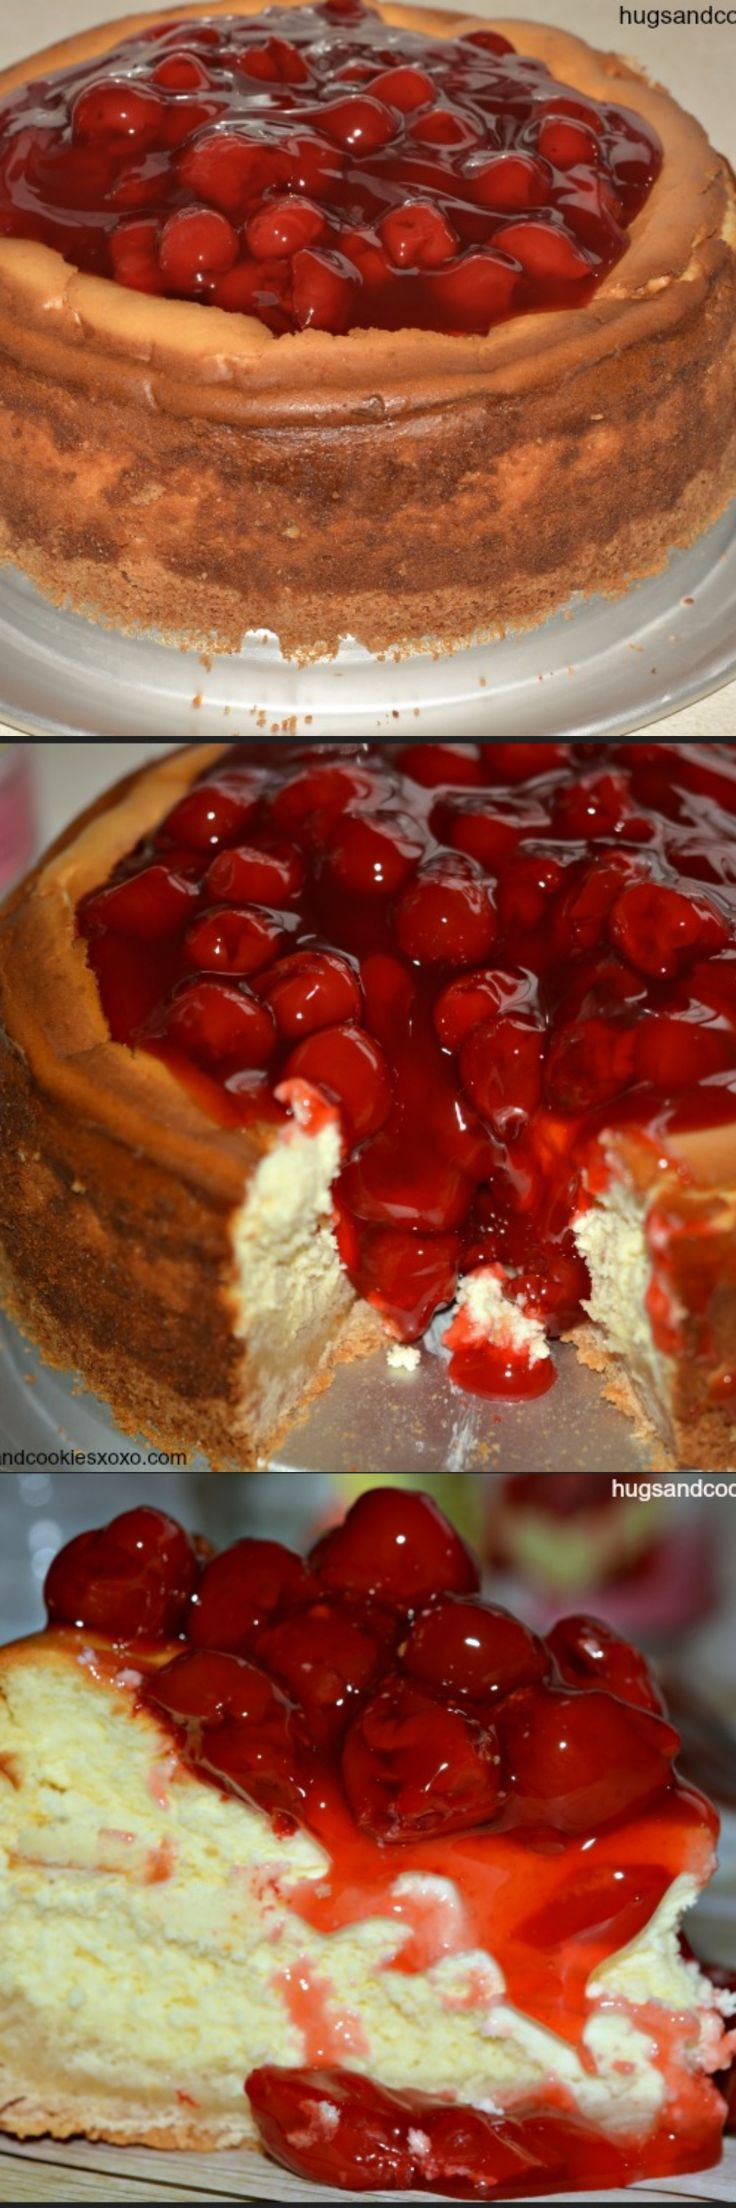 Sugar Cookie Cherry Cheesecake - Hugs and Cookies XOXO